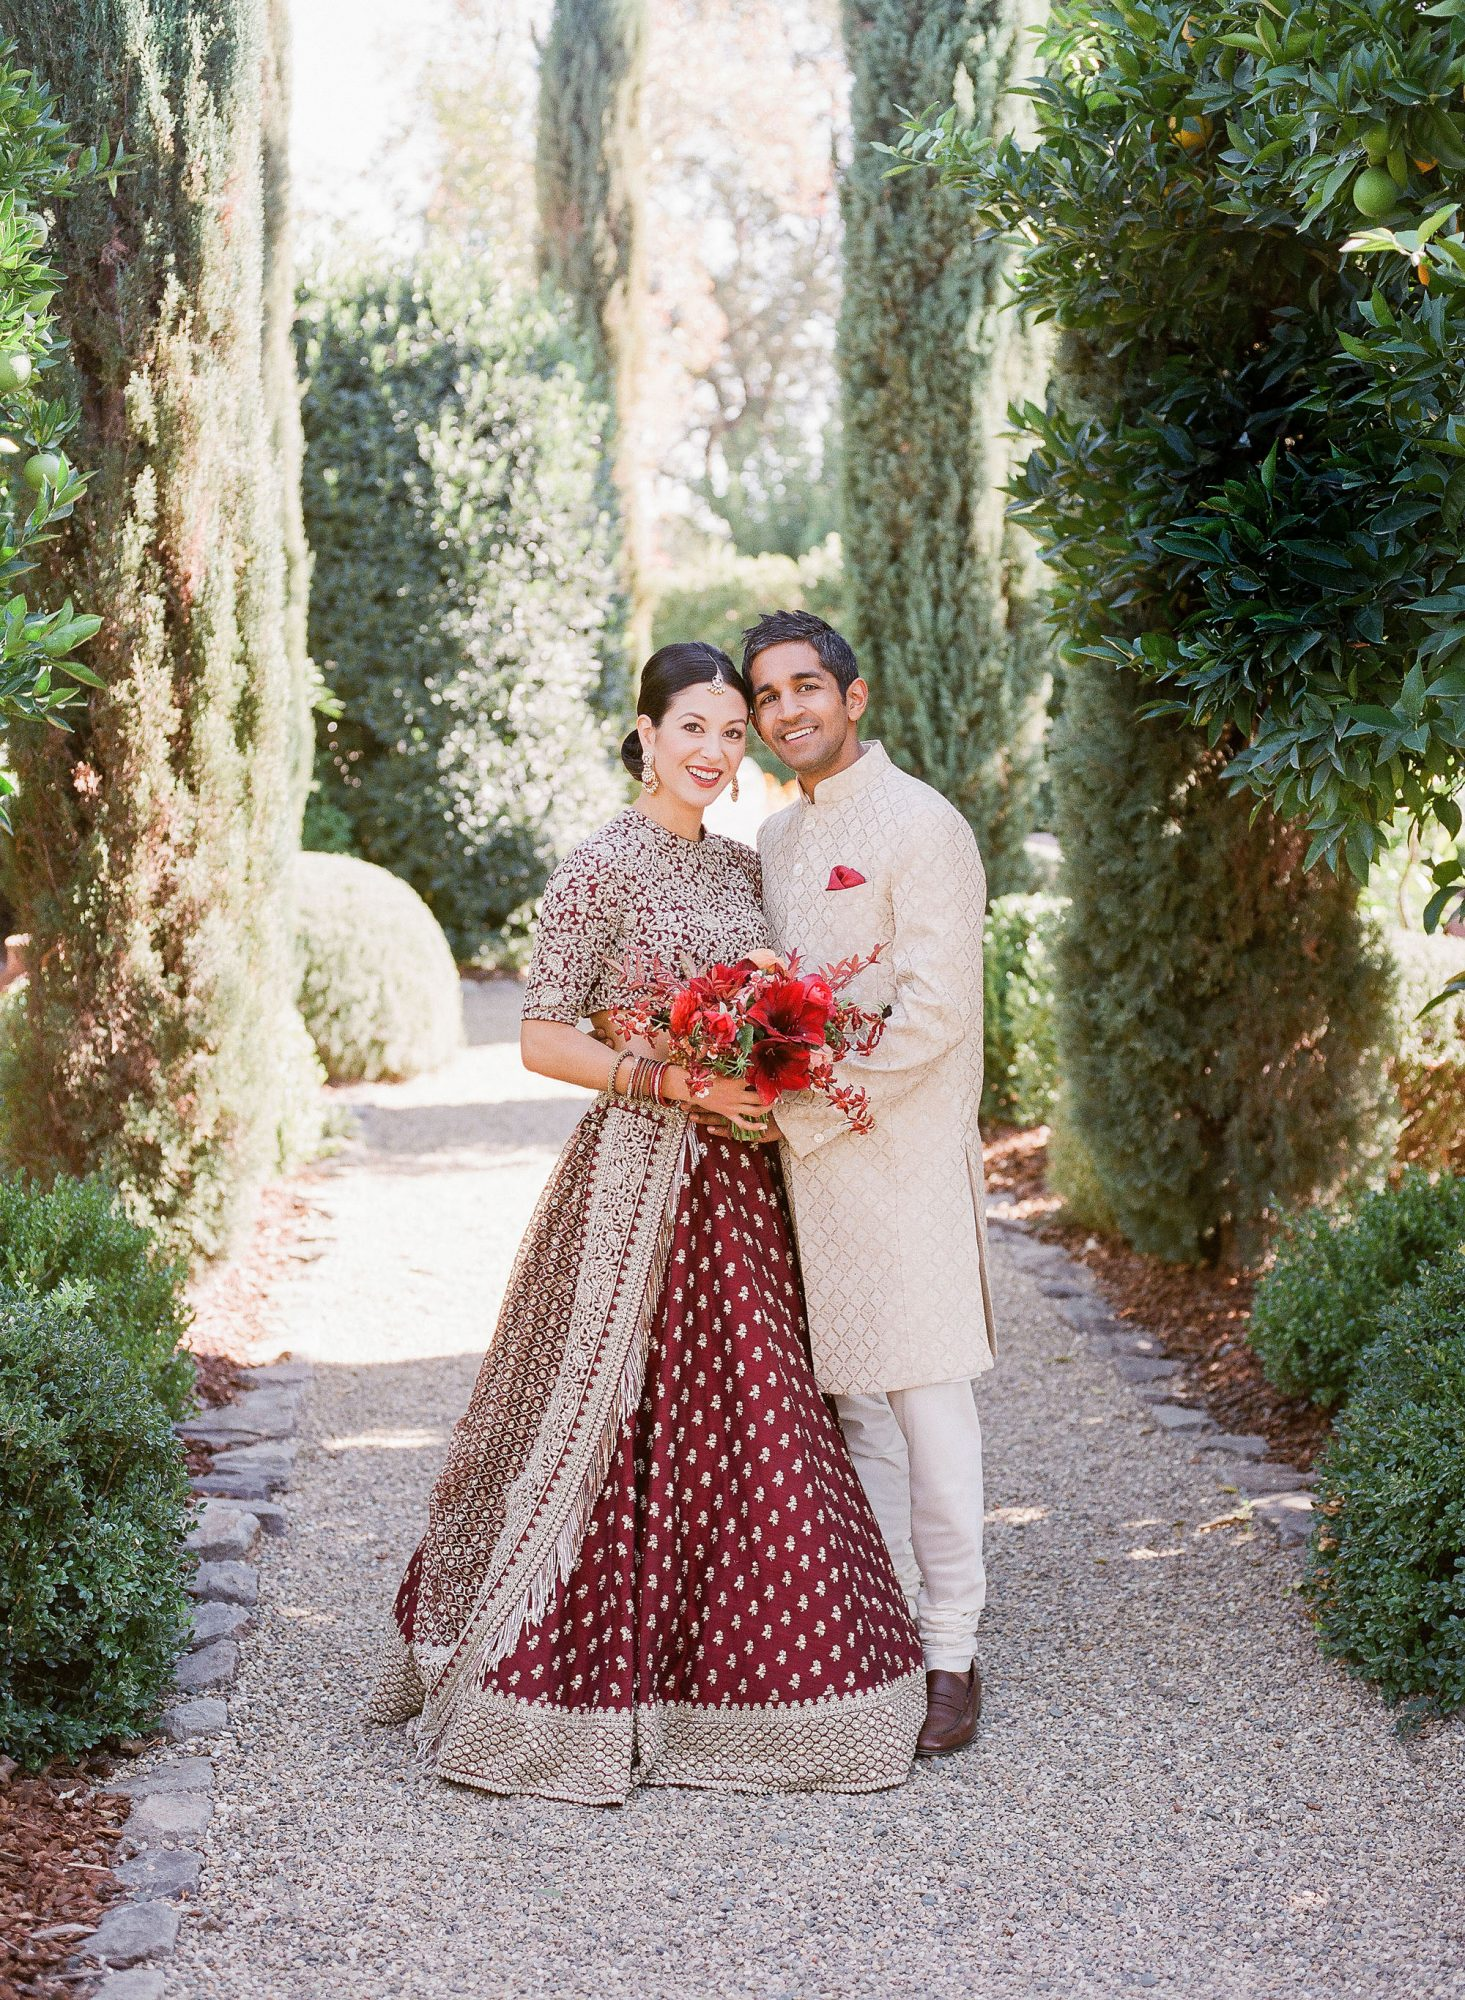 jenna alok wedding wine country california couple on path